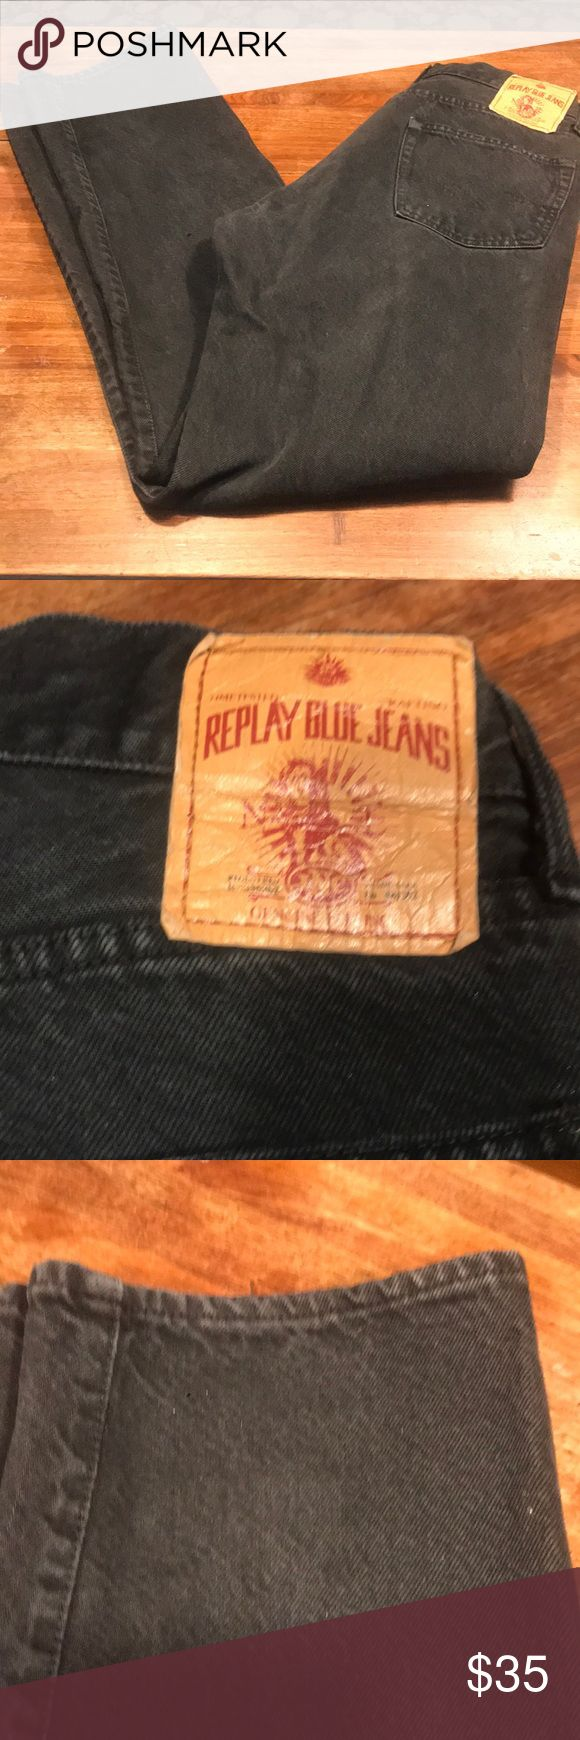 "Button fly replay faded black high waisted jeans ASOS BRAND replay jeans in a faded black ""worn"" high waisted , boyfriend style .... as they are a 900 regular which these could be men's ? But if they are they look bomb on us girls too ... they are Italian made , and made of 100% cotton .. NO GIVE ""stretch"" ... so if ur into a Vntg look , these are perf to help u achieve that vibe. Measurements are approx. 26"" waist, hips 40"", rise 11.5"", inseam 31"", ankle opening 14"".. items laid flat for…"